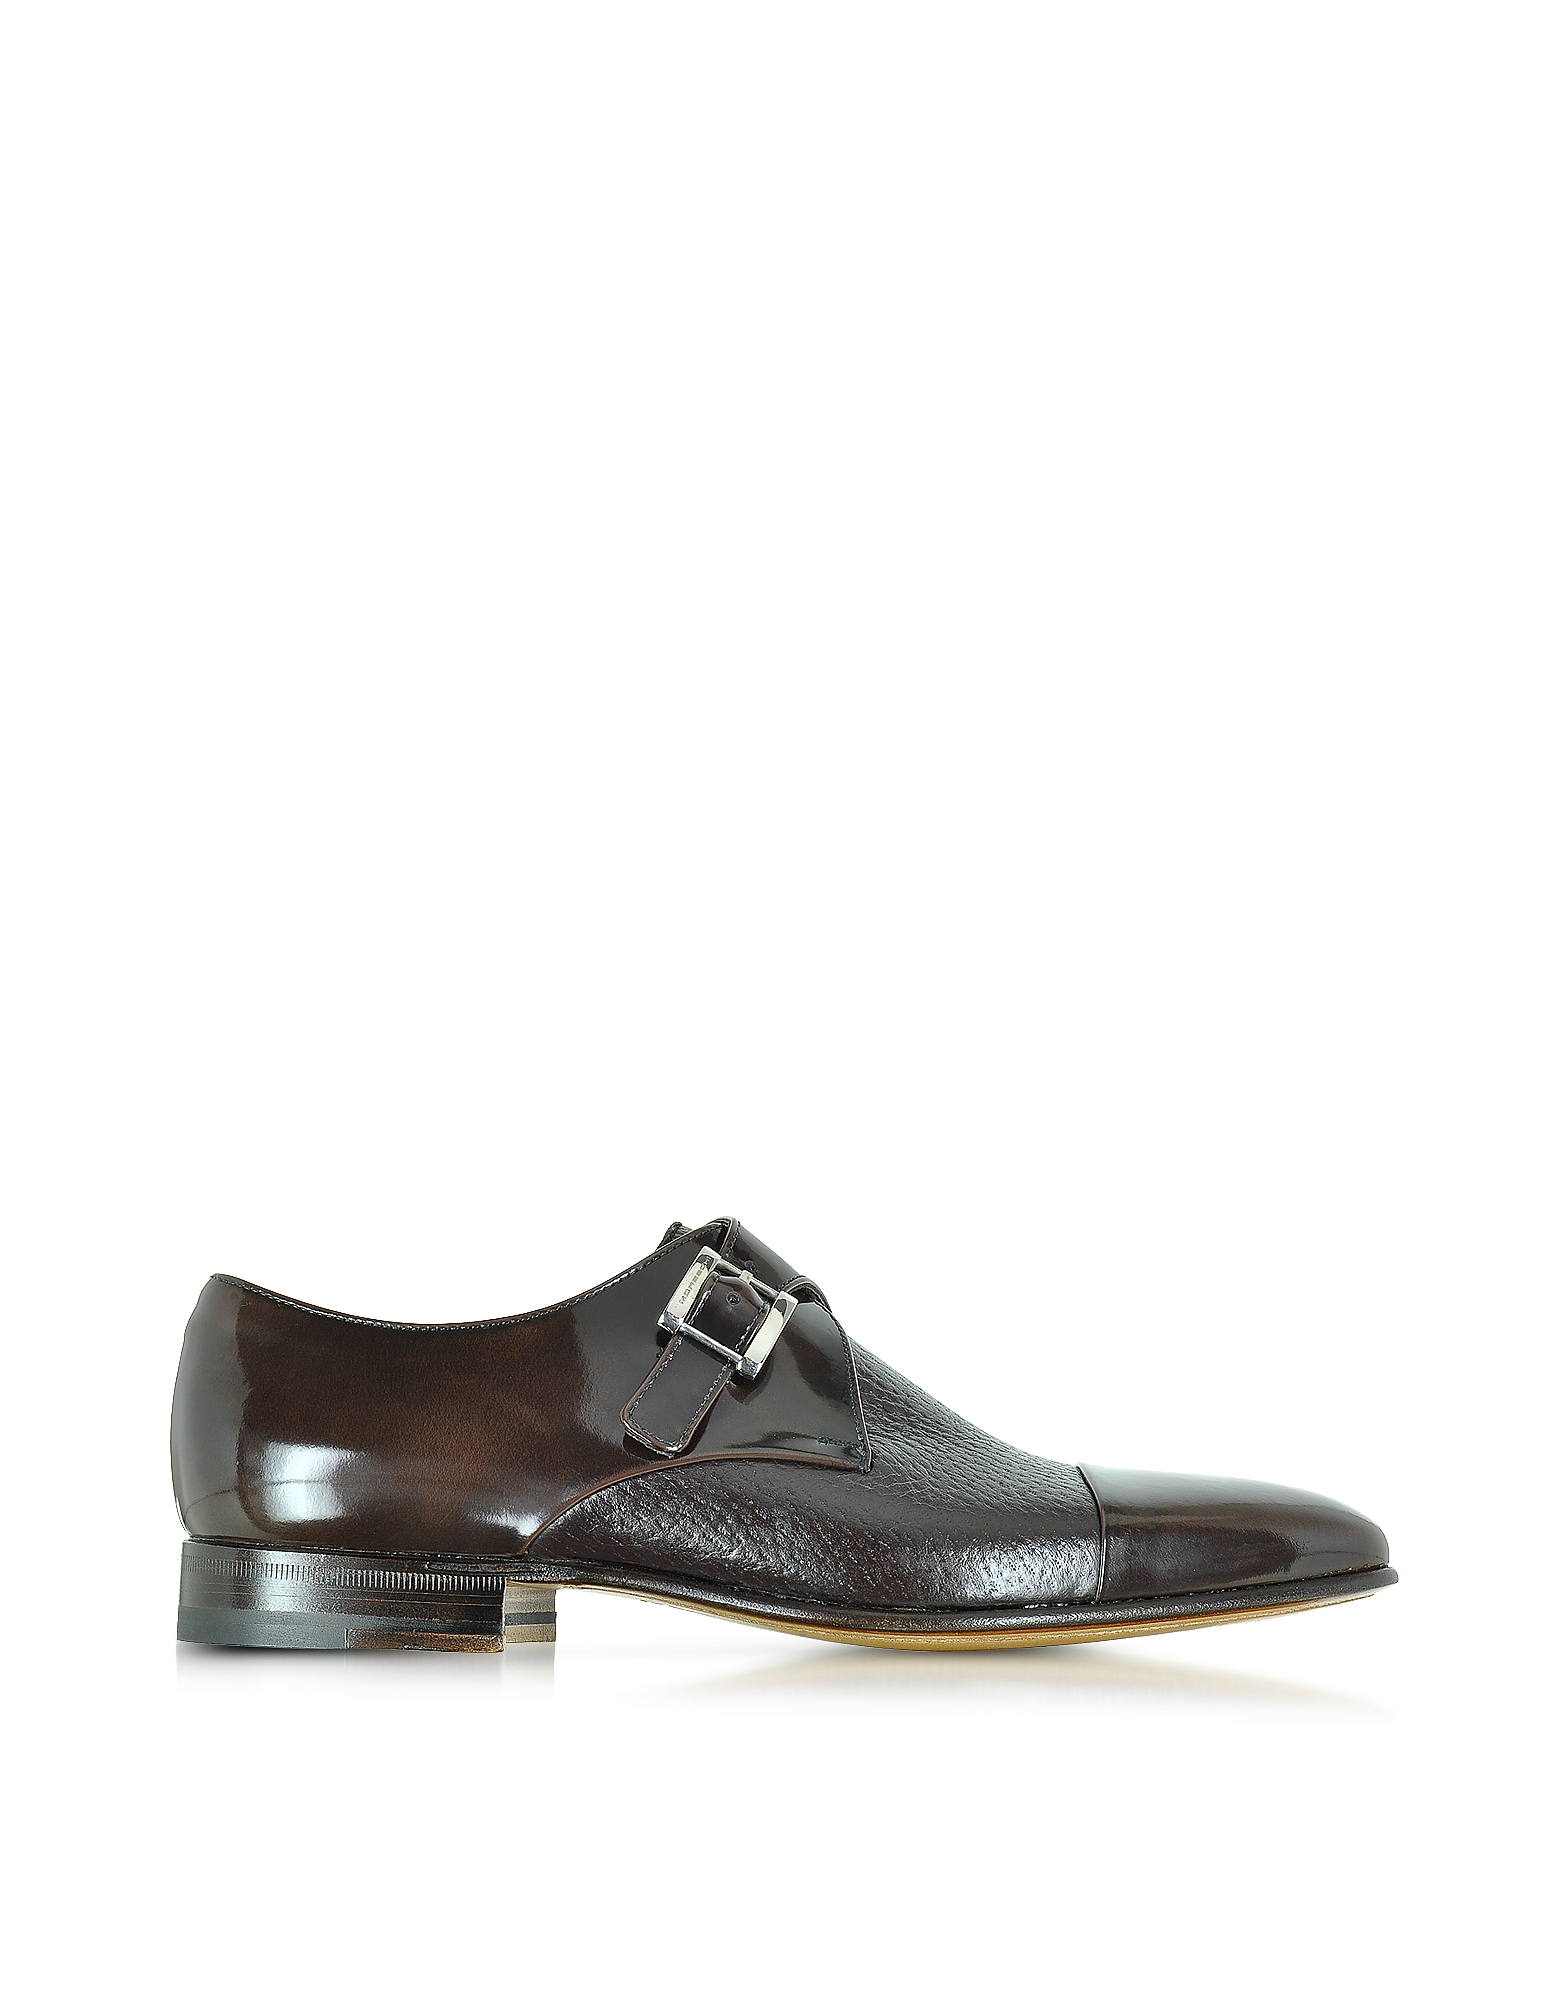 Moreschi Shoes, Nancy Dark Brown Peccary Leather Monk Strap Shoe